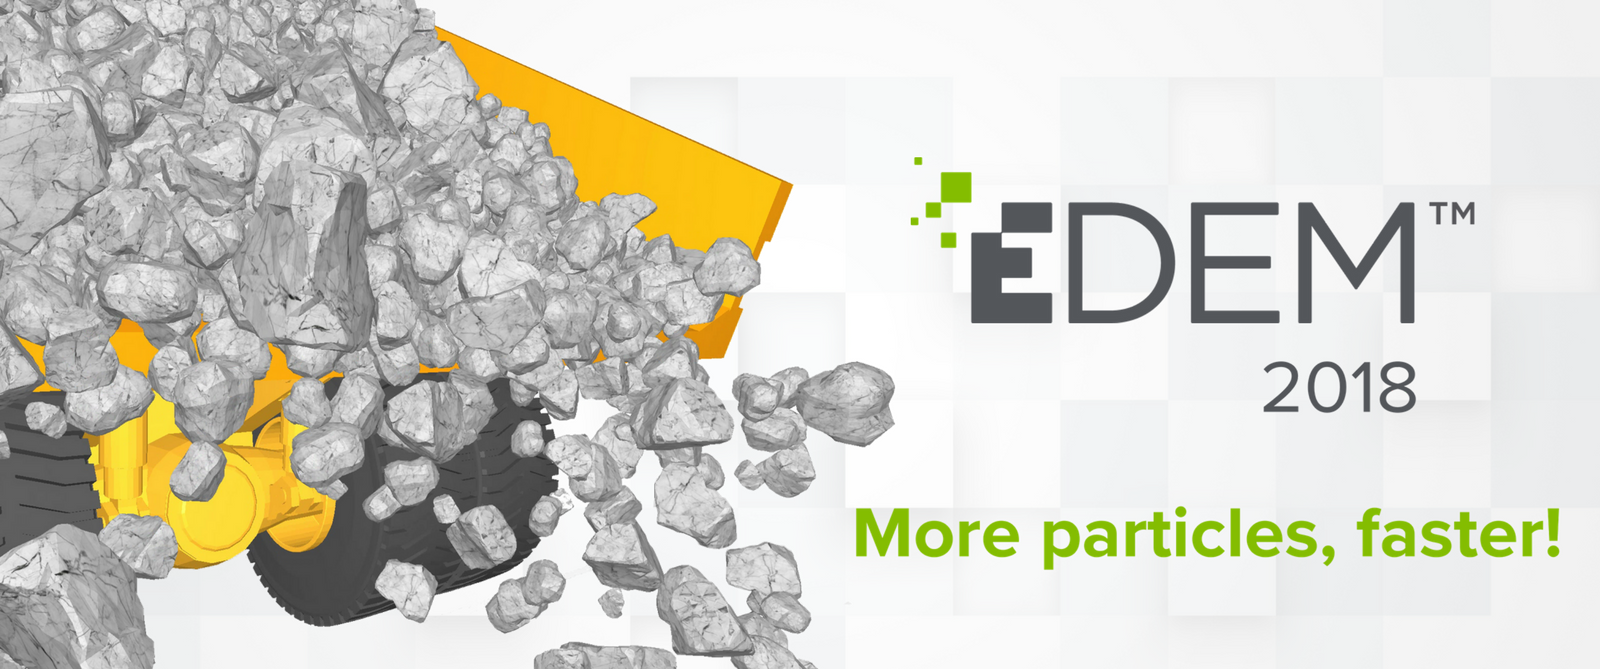 More particles…faster with EDEM 2018